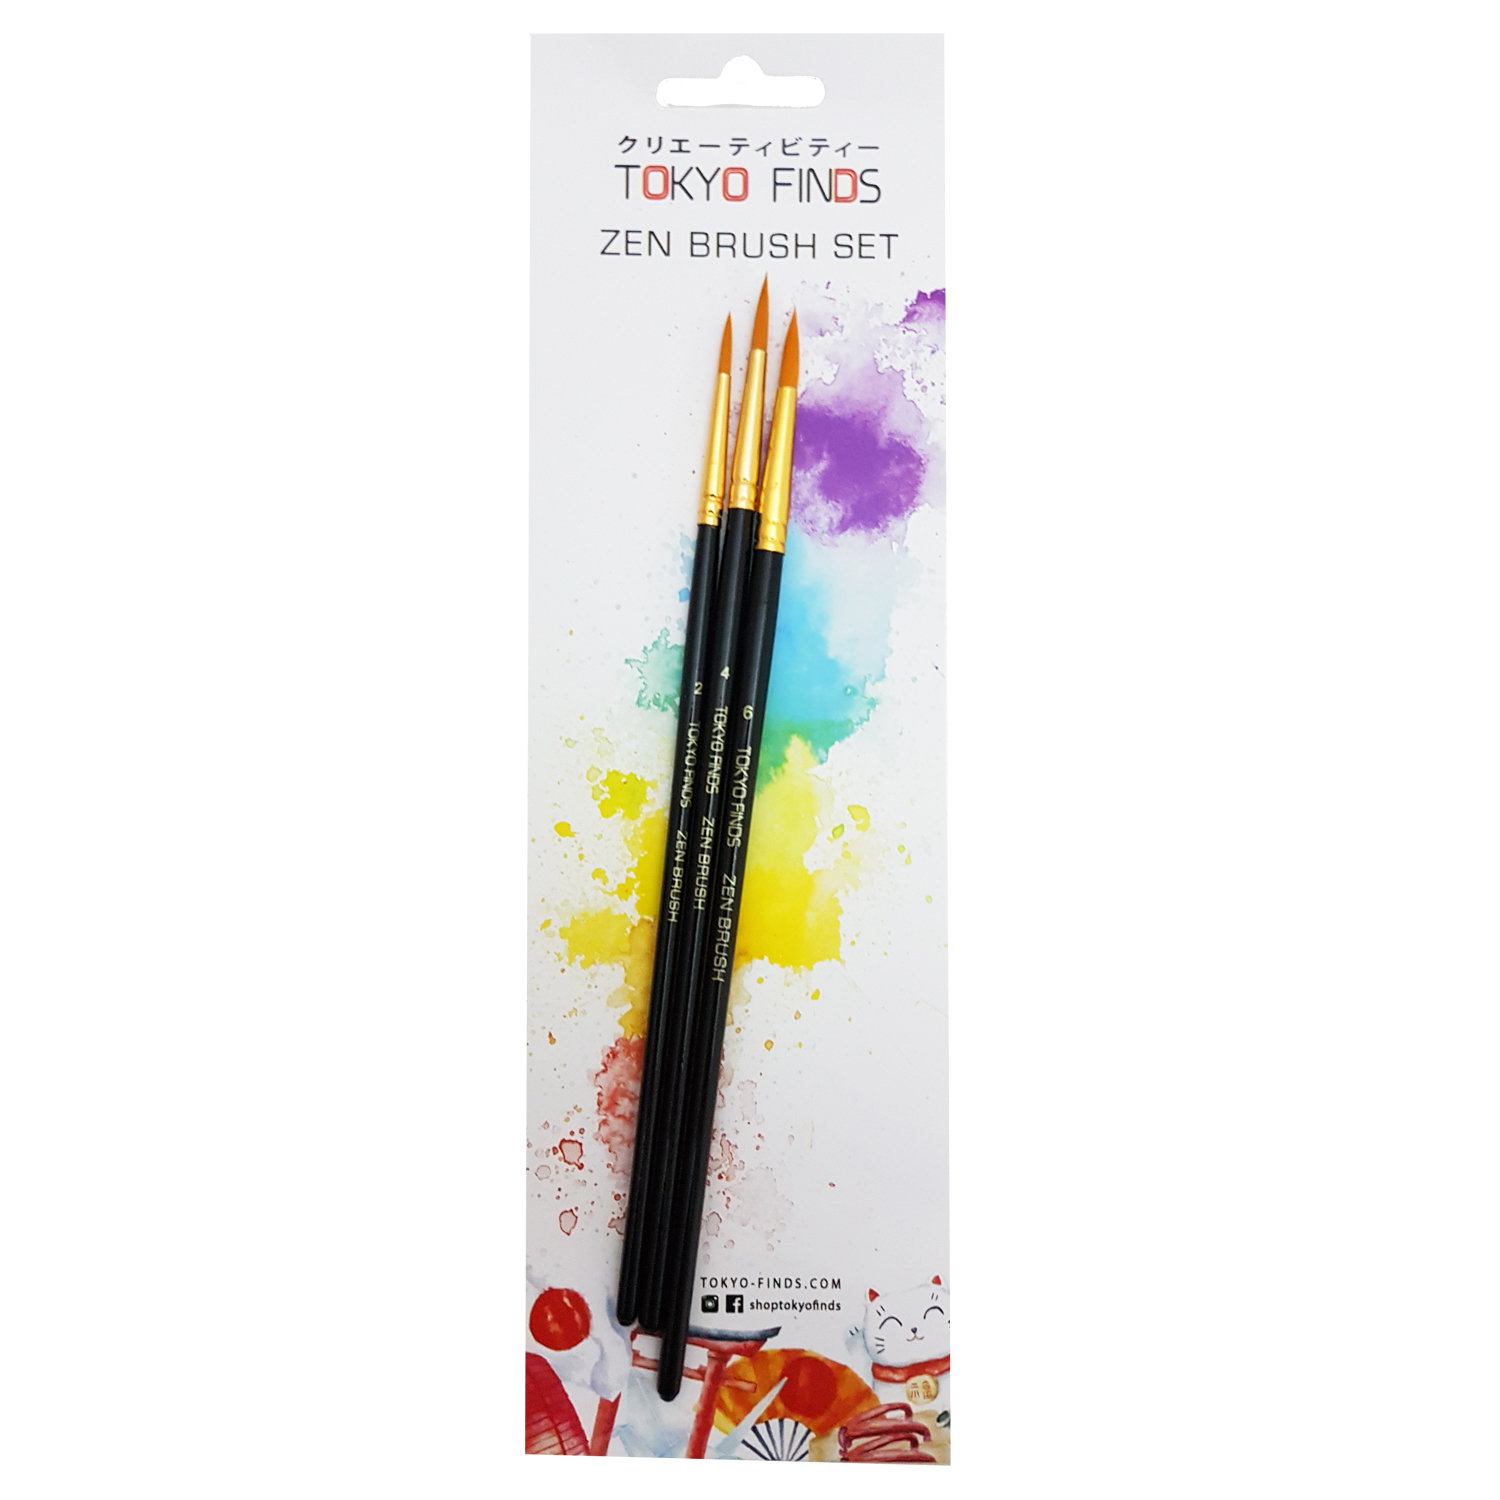 Tokyo Finds Professional Zen Brush Set of 3 for Acrylic Watercolor or Oil